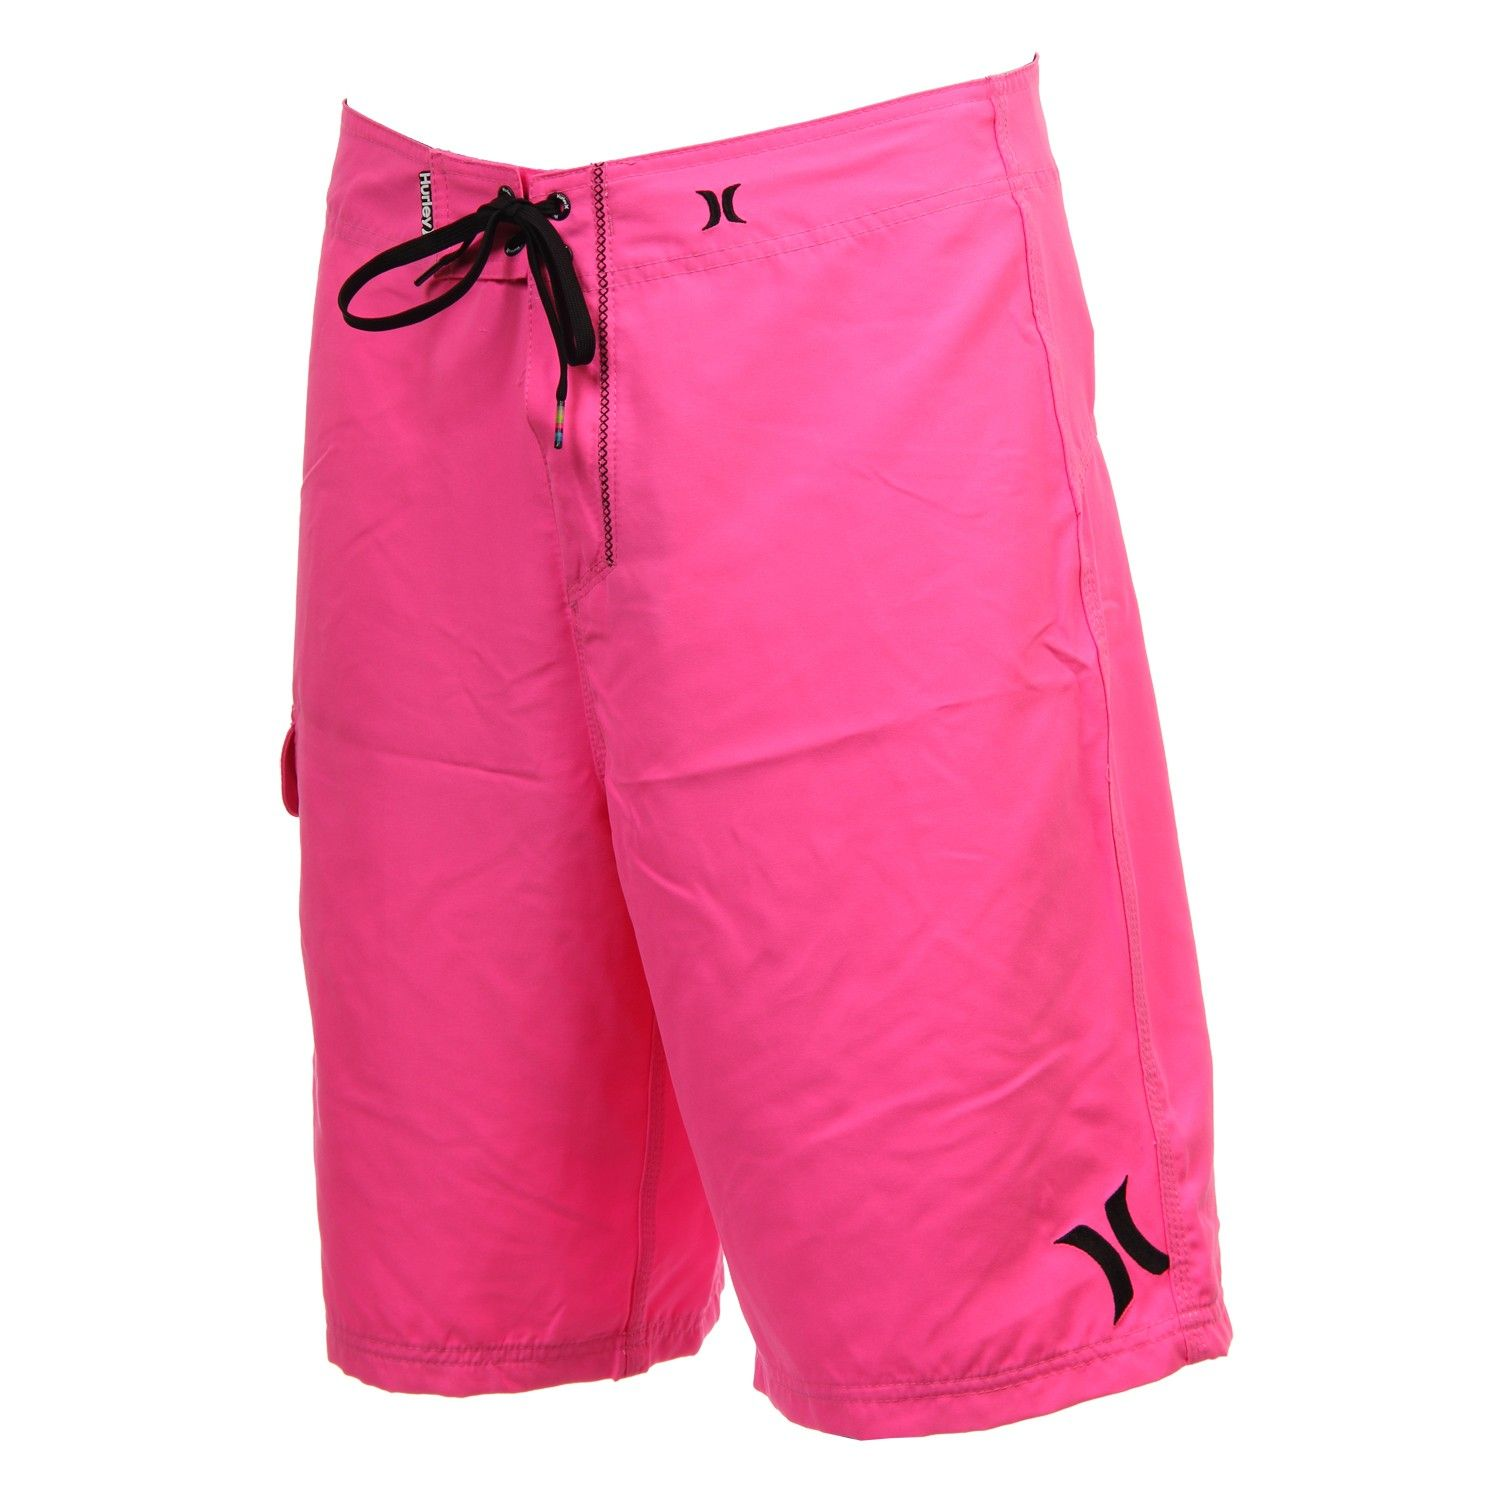 Hurley Mens Boardshorts One   Only Neon Pink  f71303b27f7